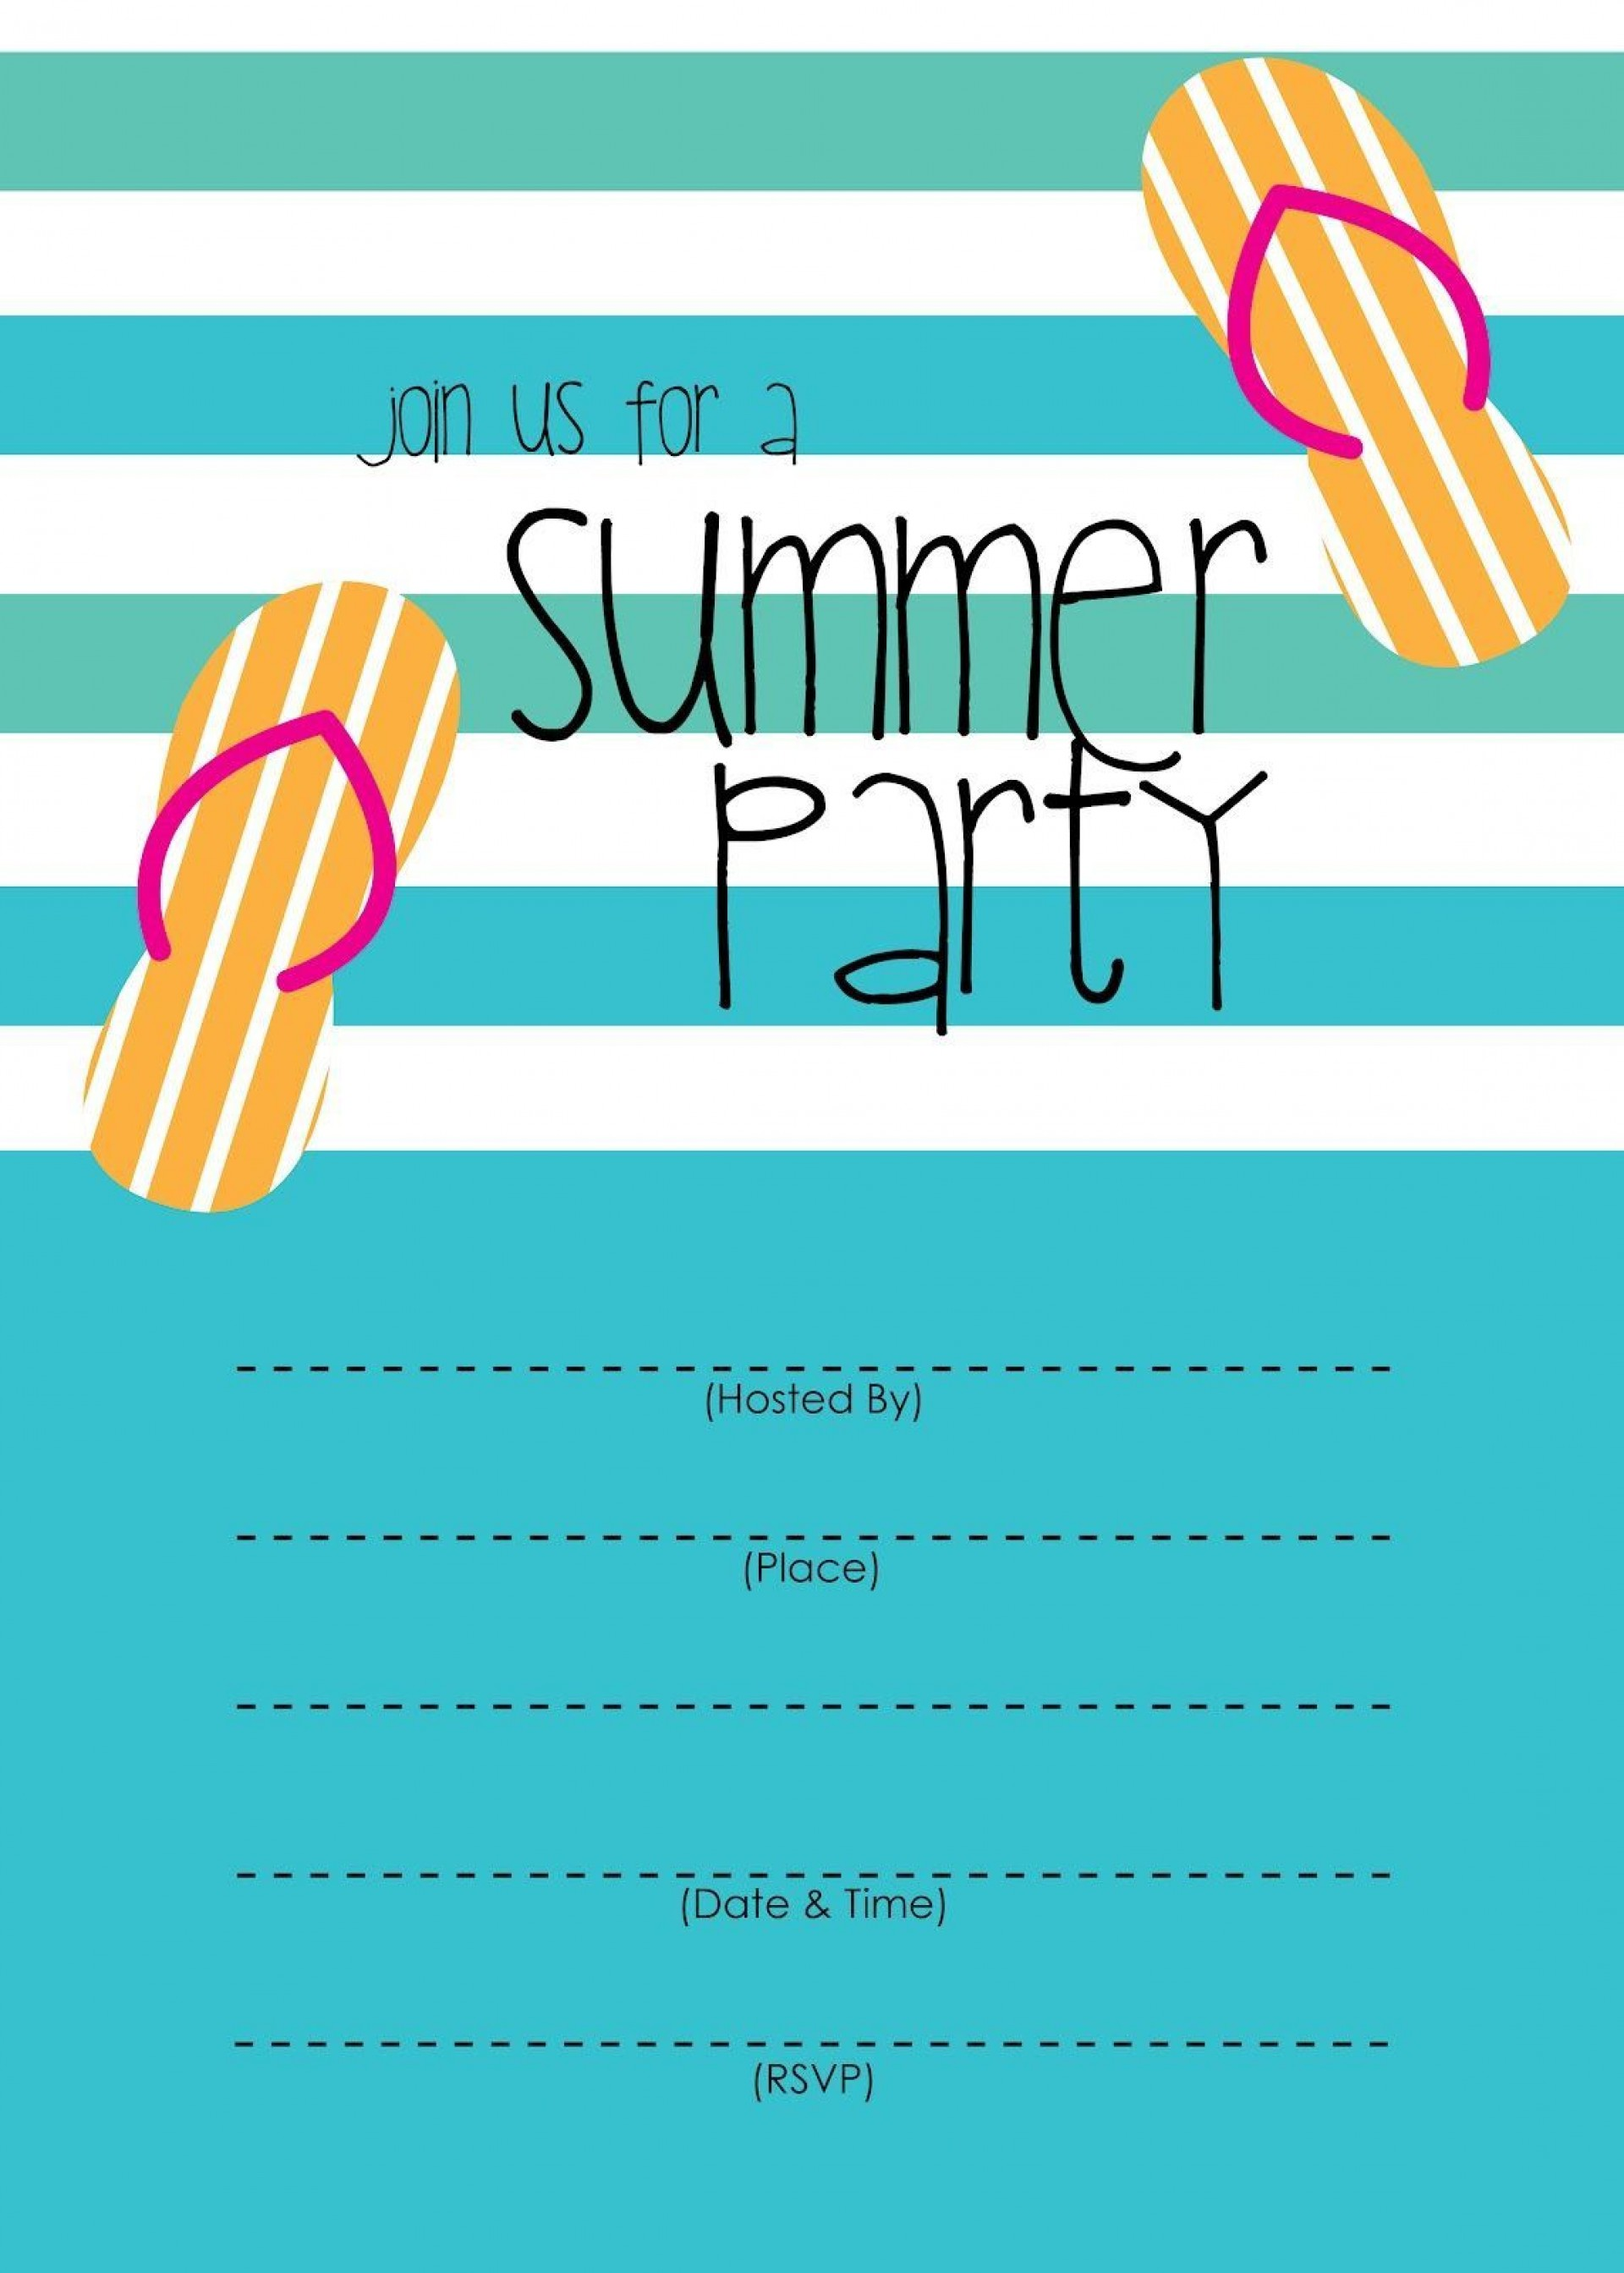 003 Excellent Pool Party Invitation Template Free Idea  Downloadable Printable Swimming1920